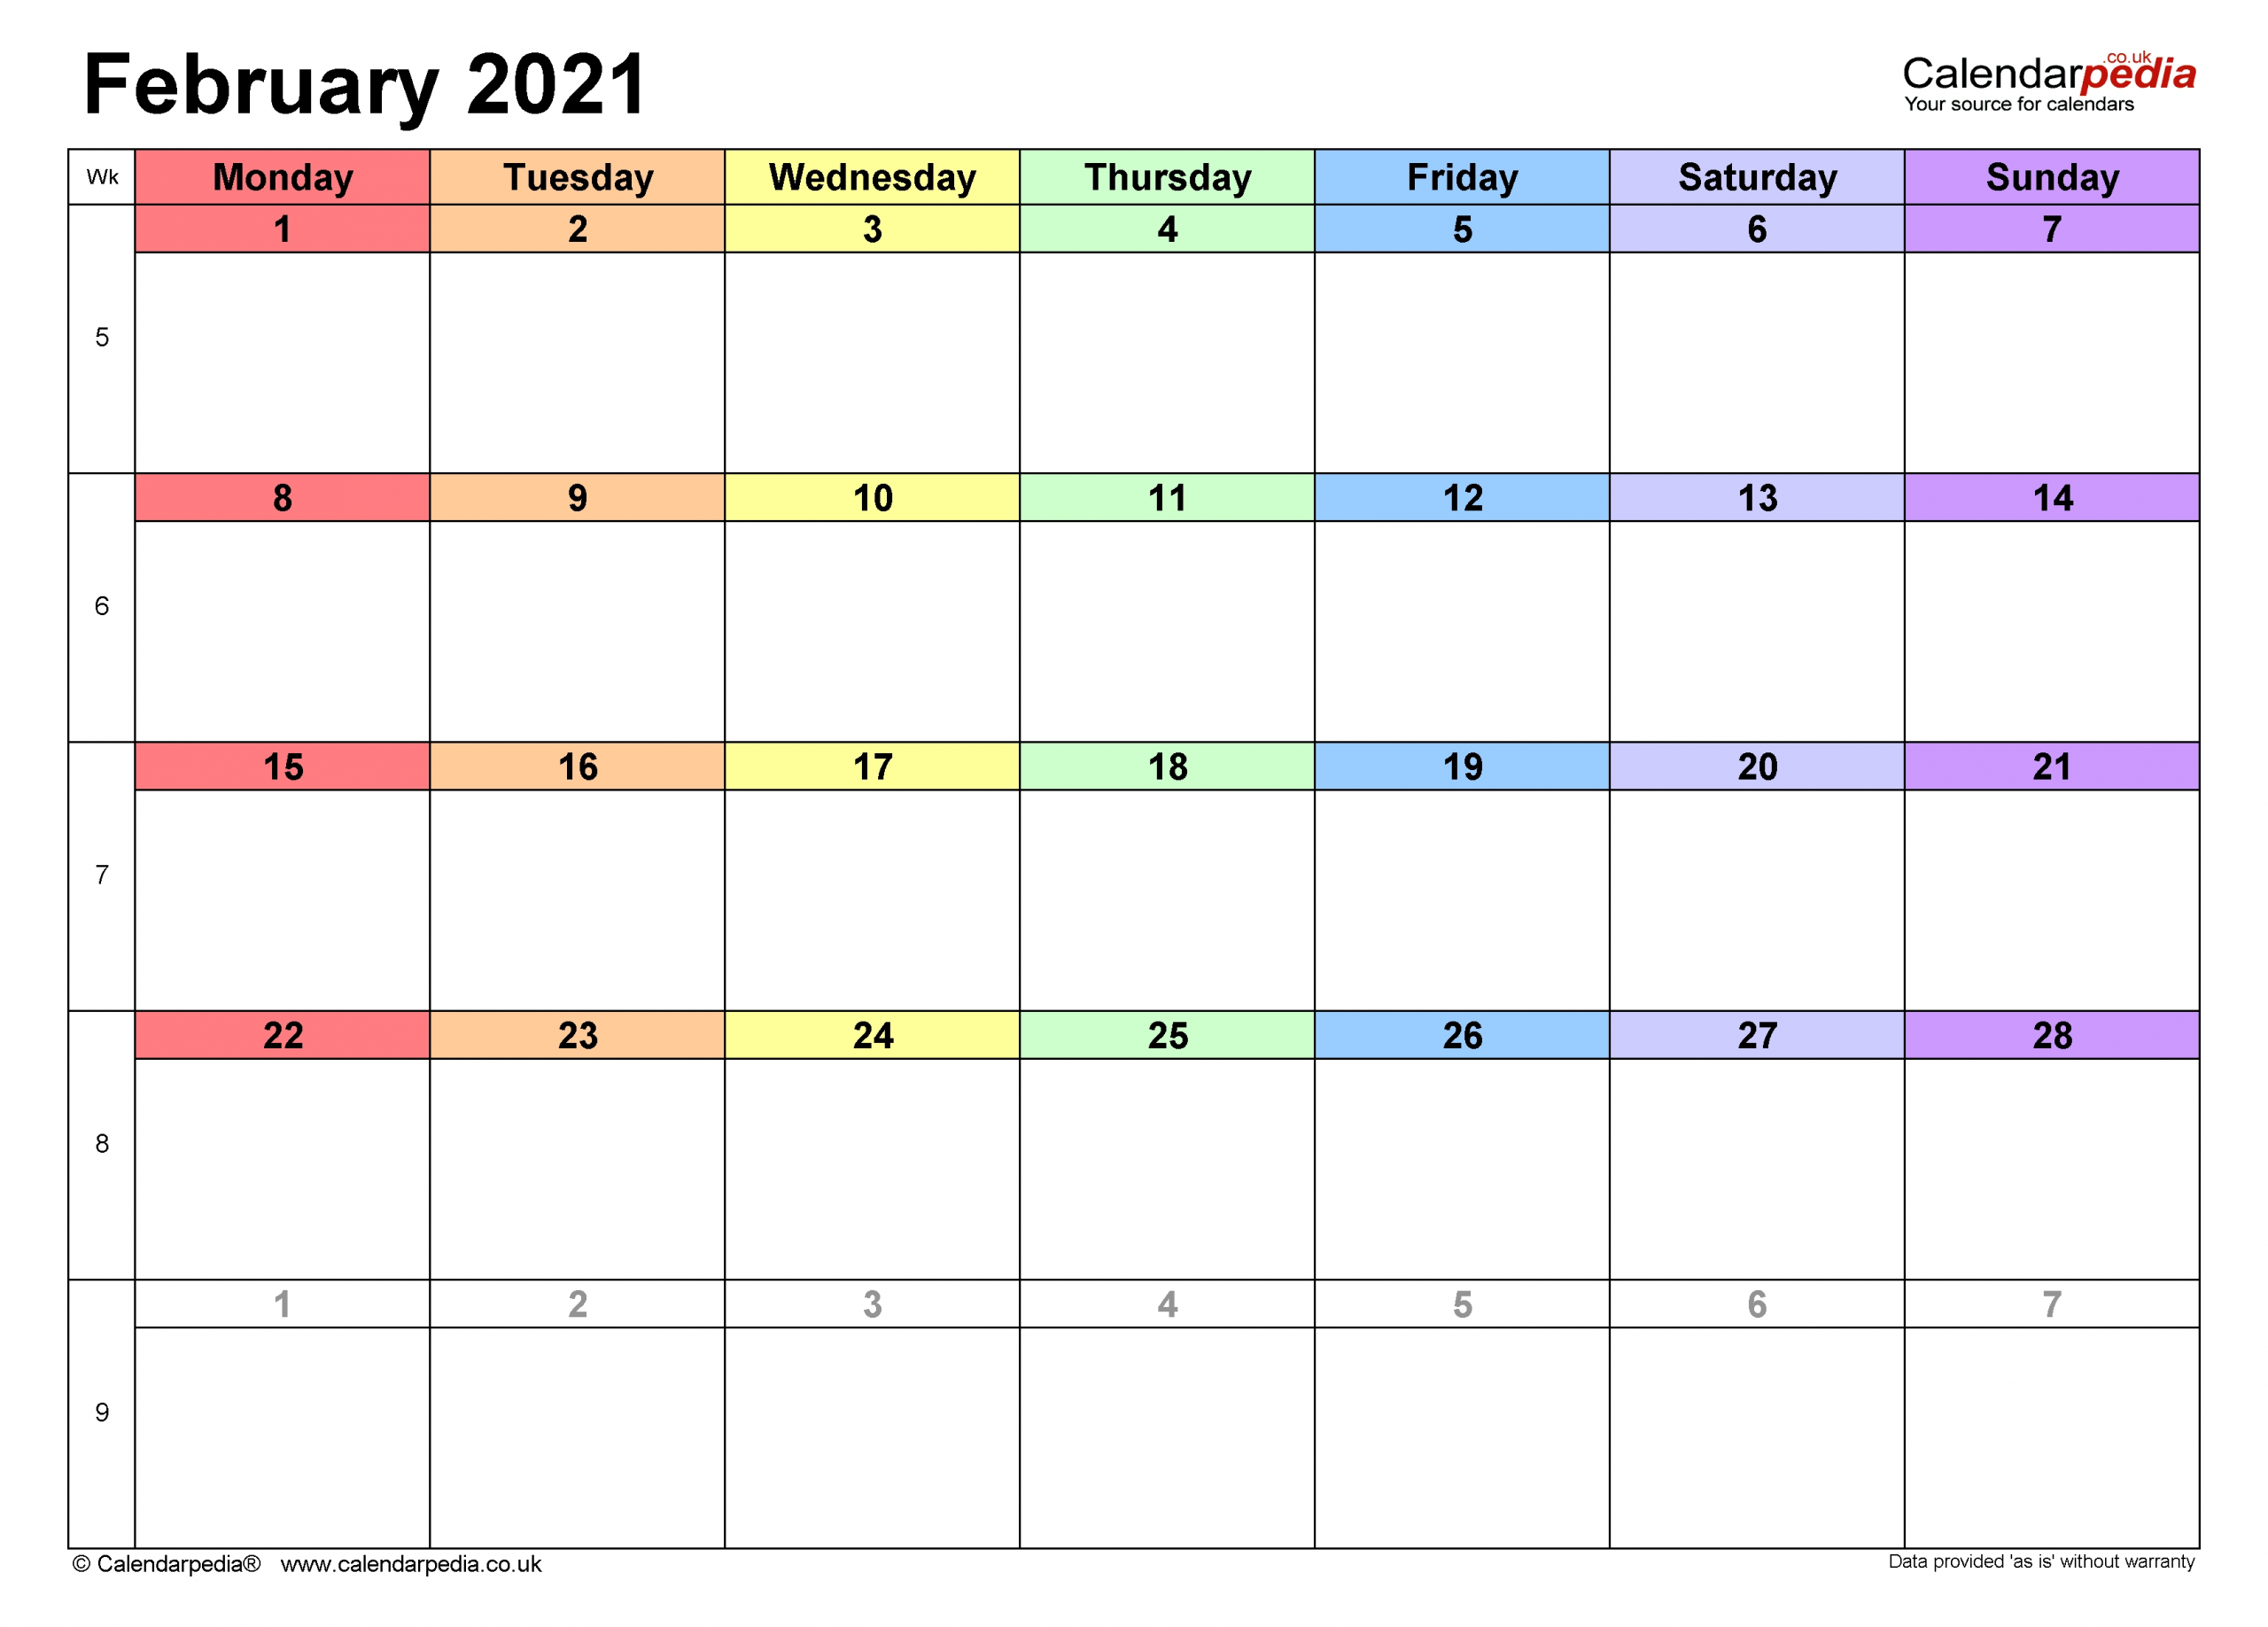 Calendar February 2021 Uk With Excel, Word And Pdf Templates